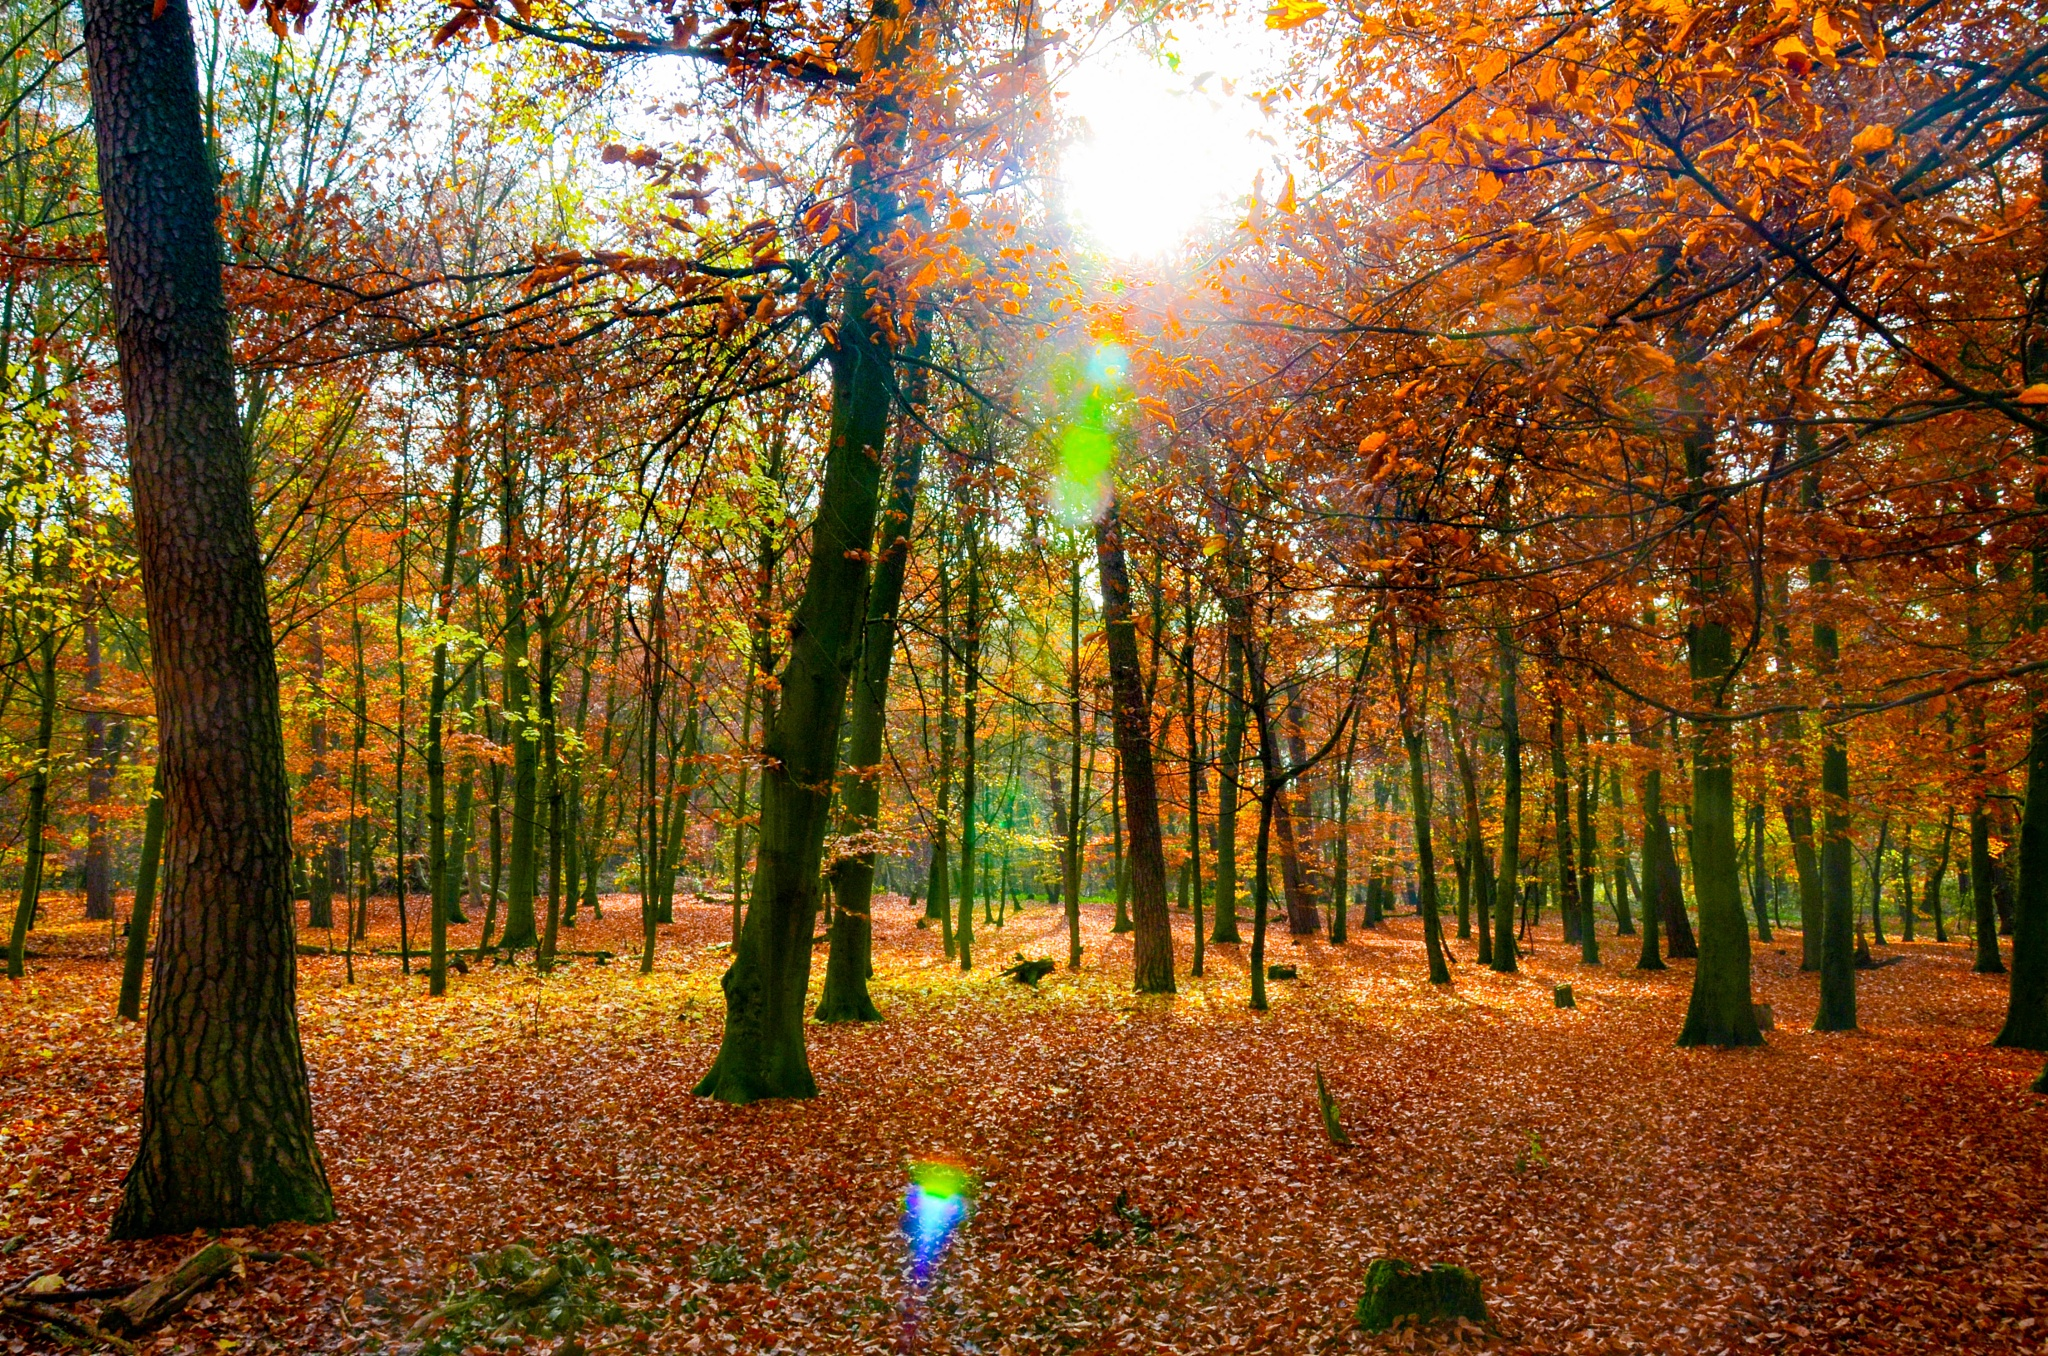 Colours of autumn by Michael Näther